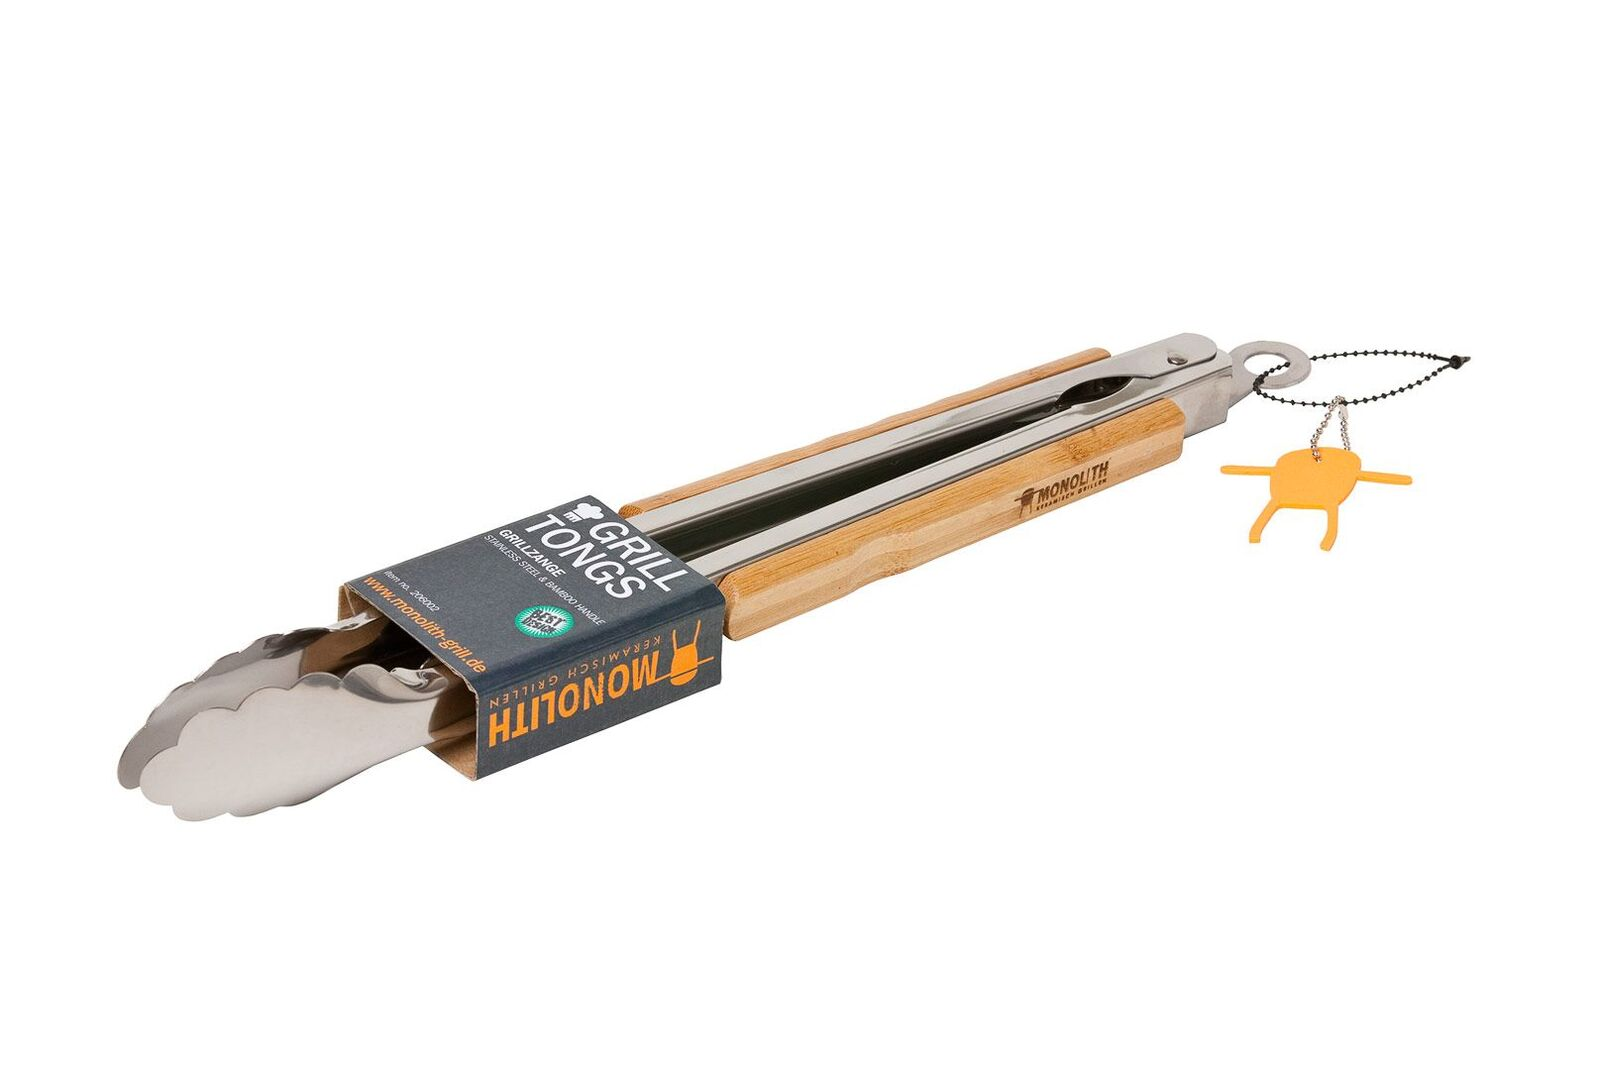 Monolith Grill Tongs